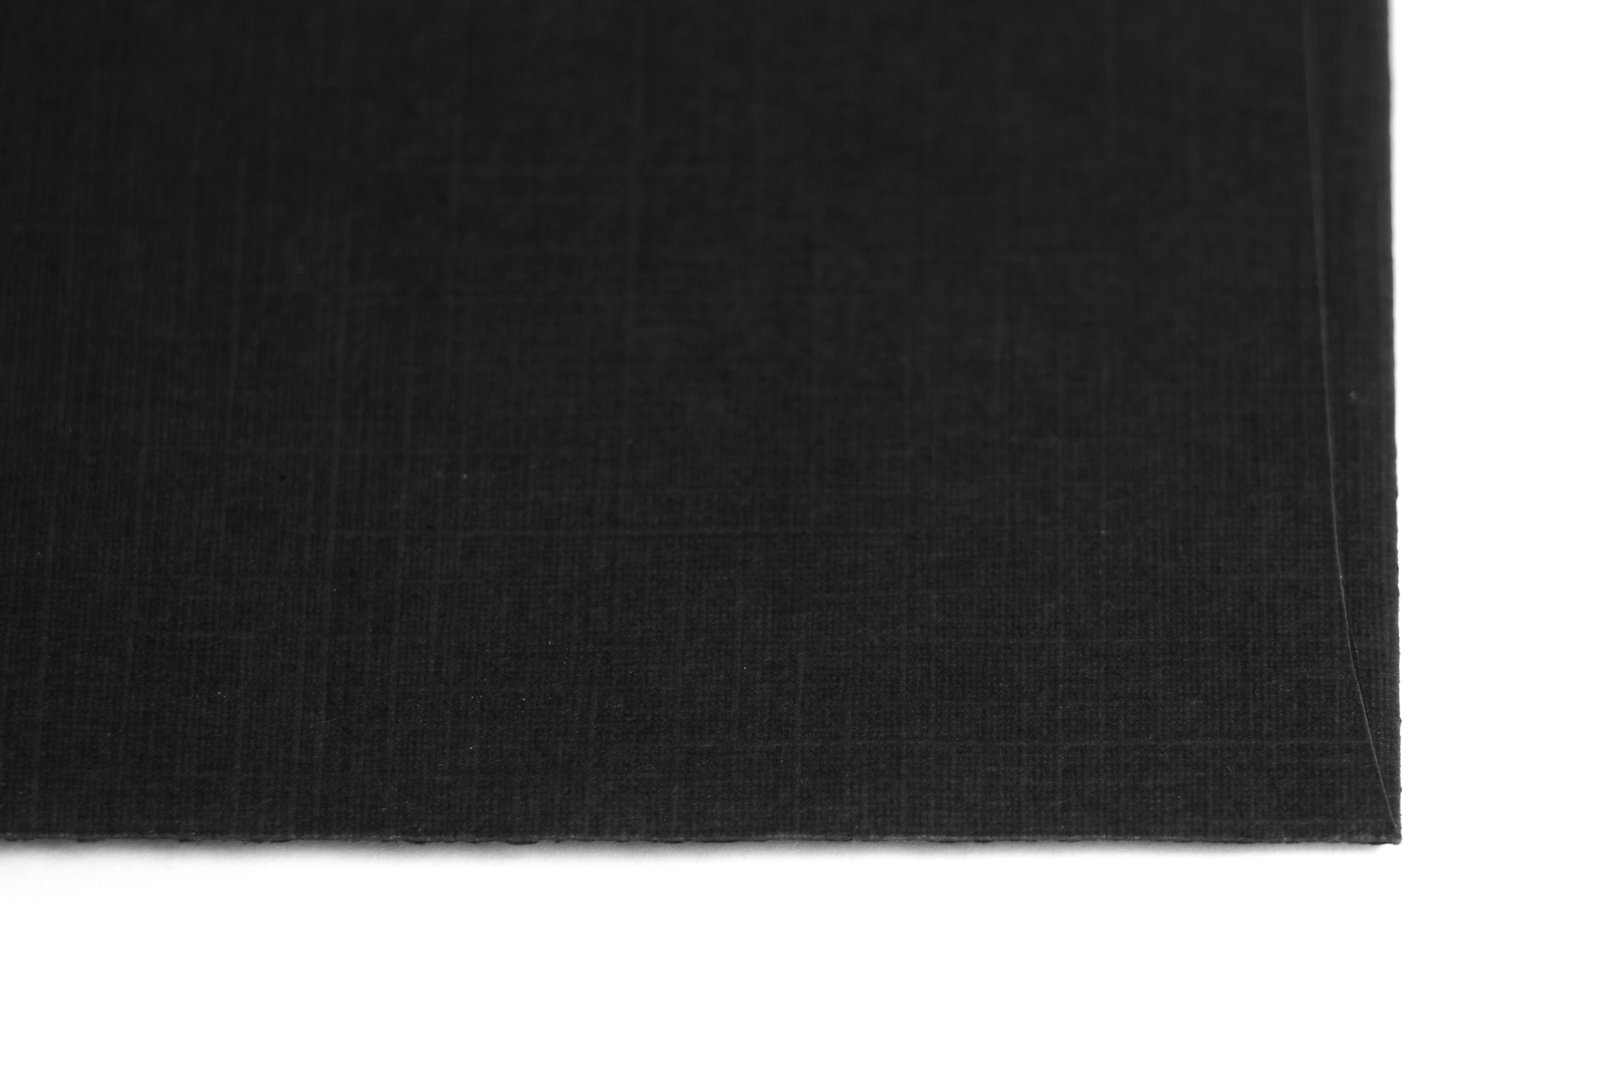 A7 Invitation Envelopes (5 1/4 x 7 1/4) - Black Linen (50 Qty) | Perfect for Invitations, Announcements, Sending Cards, 5x7 Photos, Weddings | 4880-BLI-50